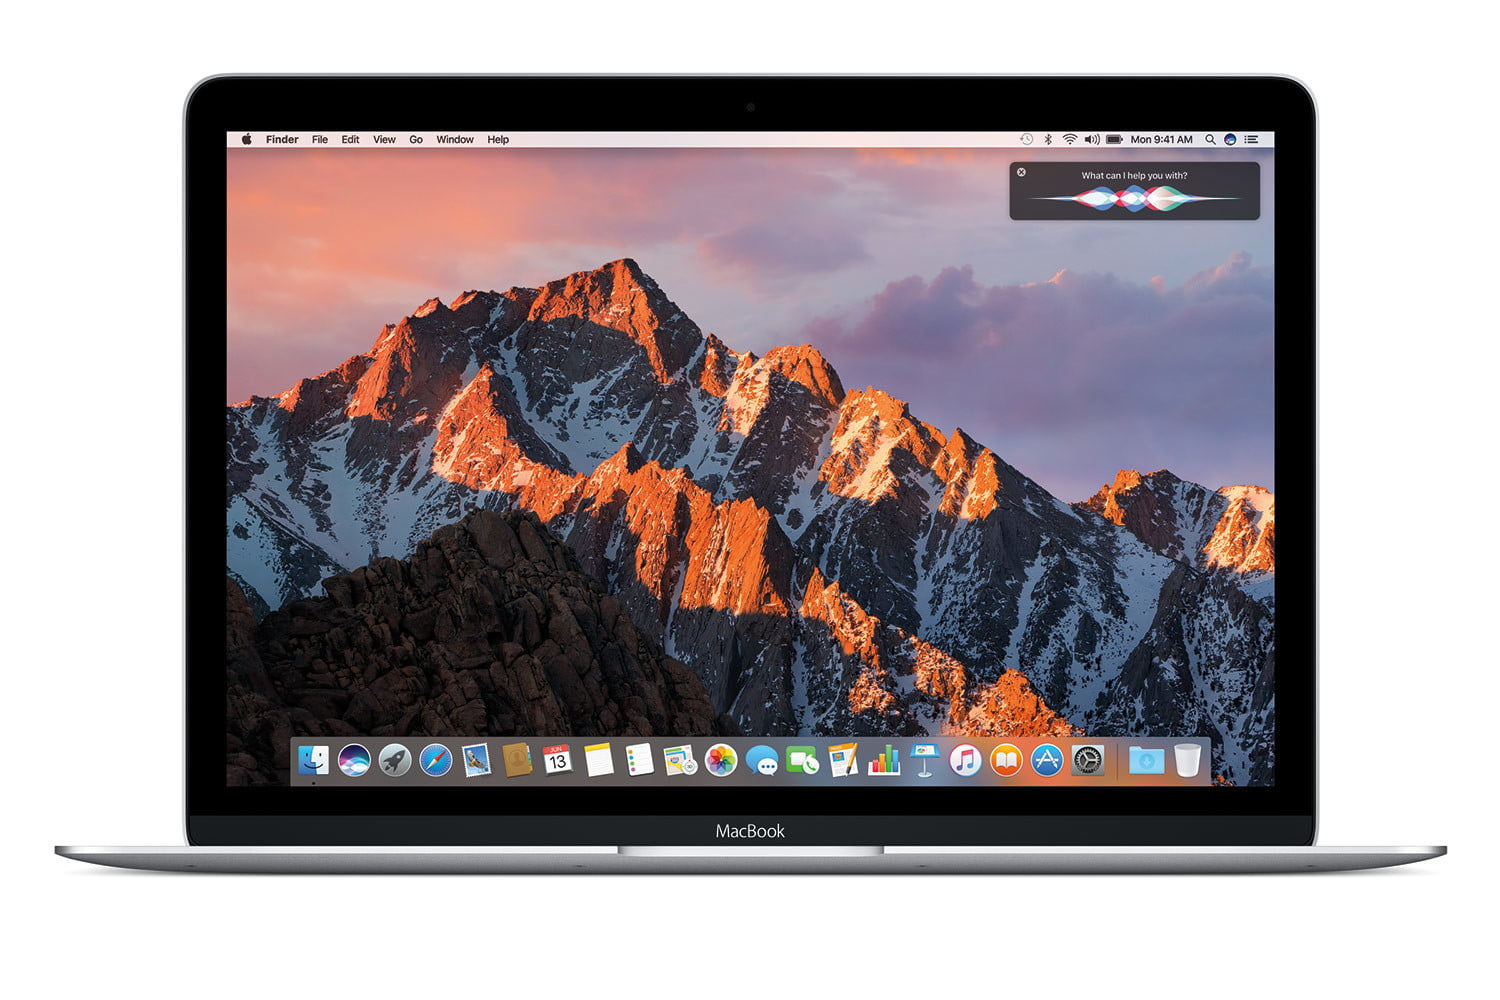 os x name change to macos and first version macossierra 005